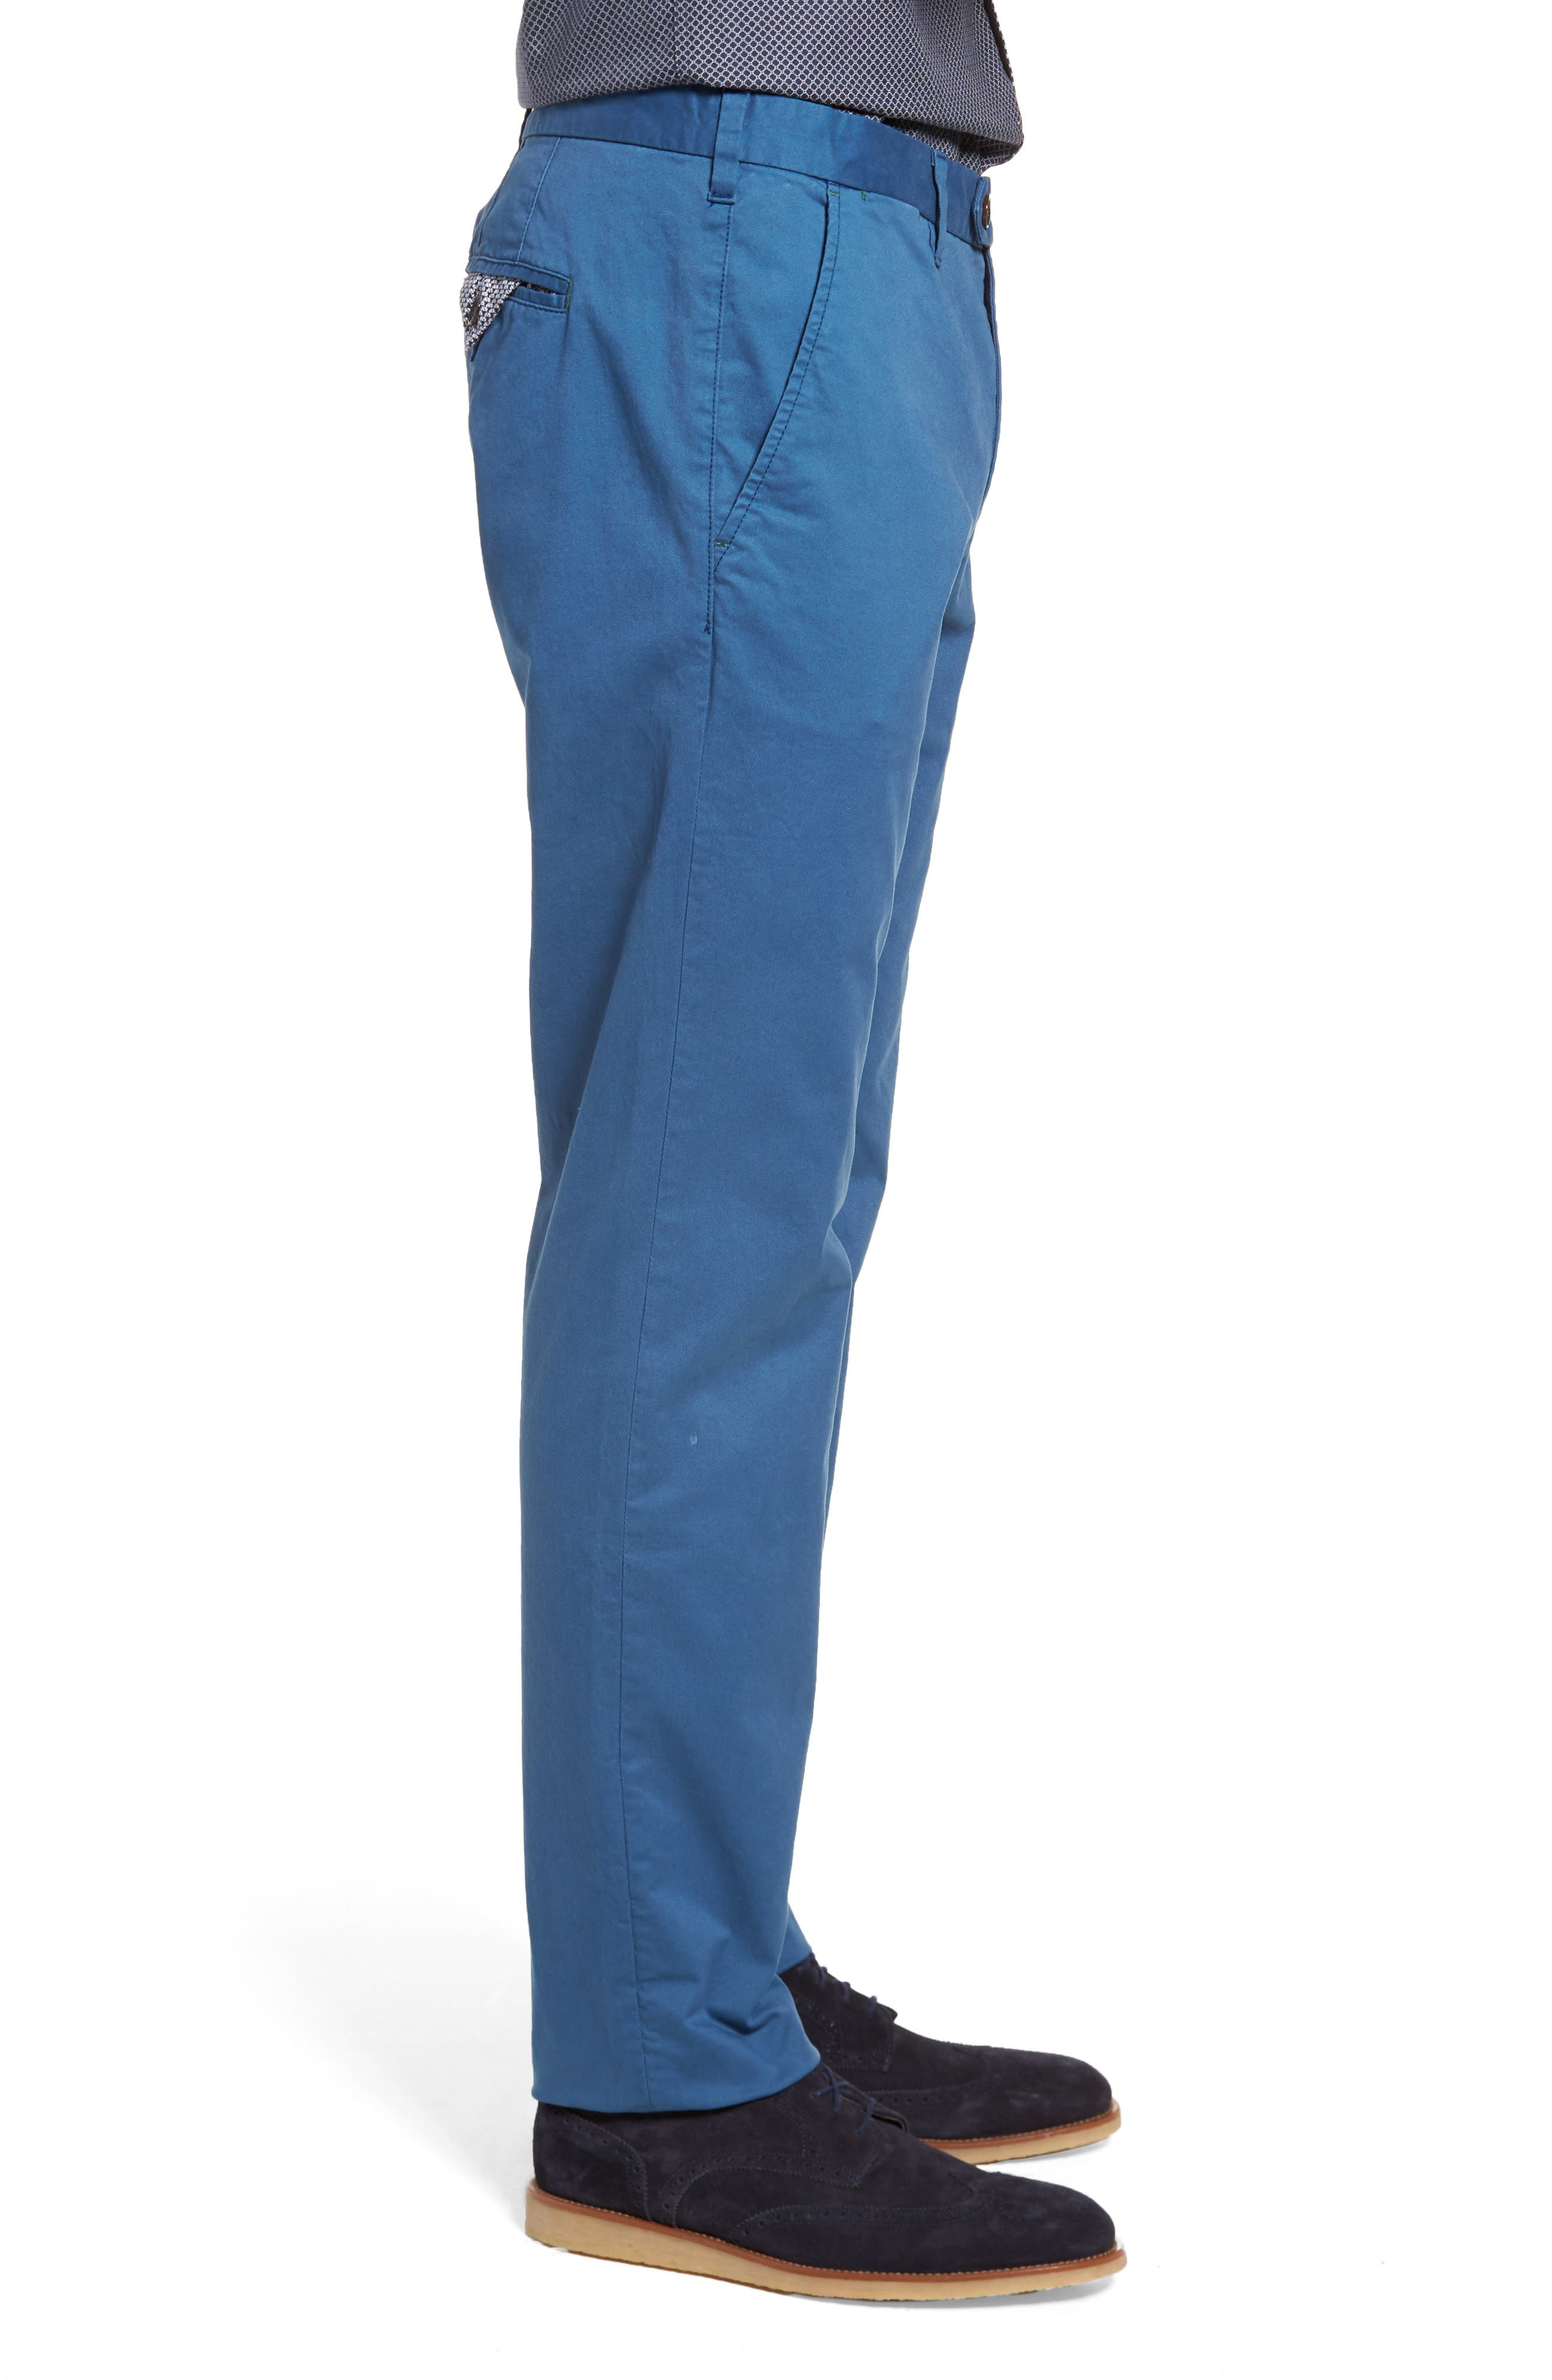 Procor Slim Fit Chino Pants,                             Alternate thumbnail 3, color,                             Navy